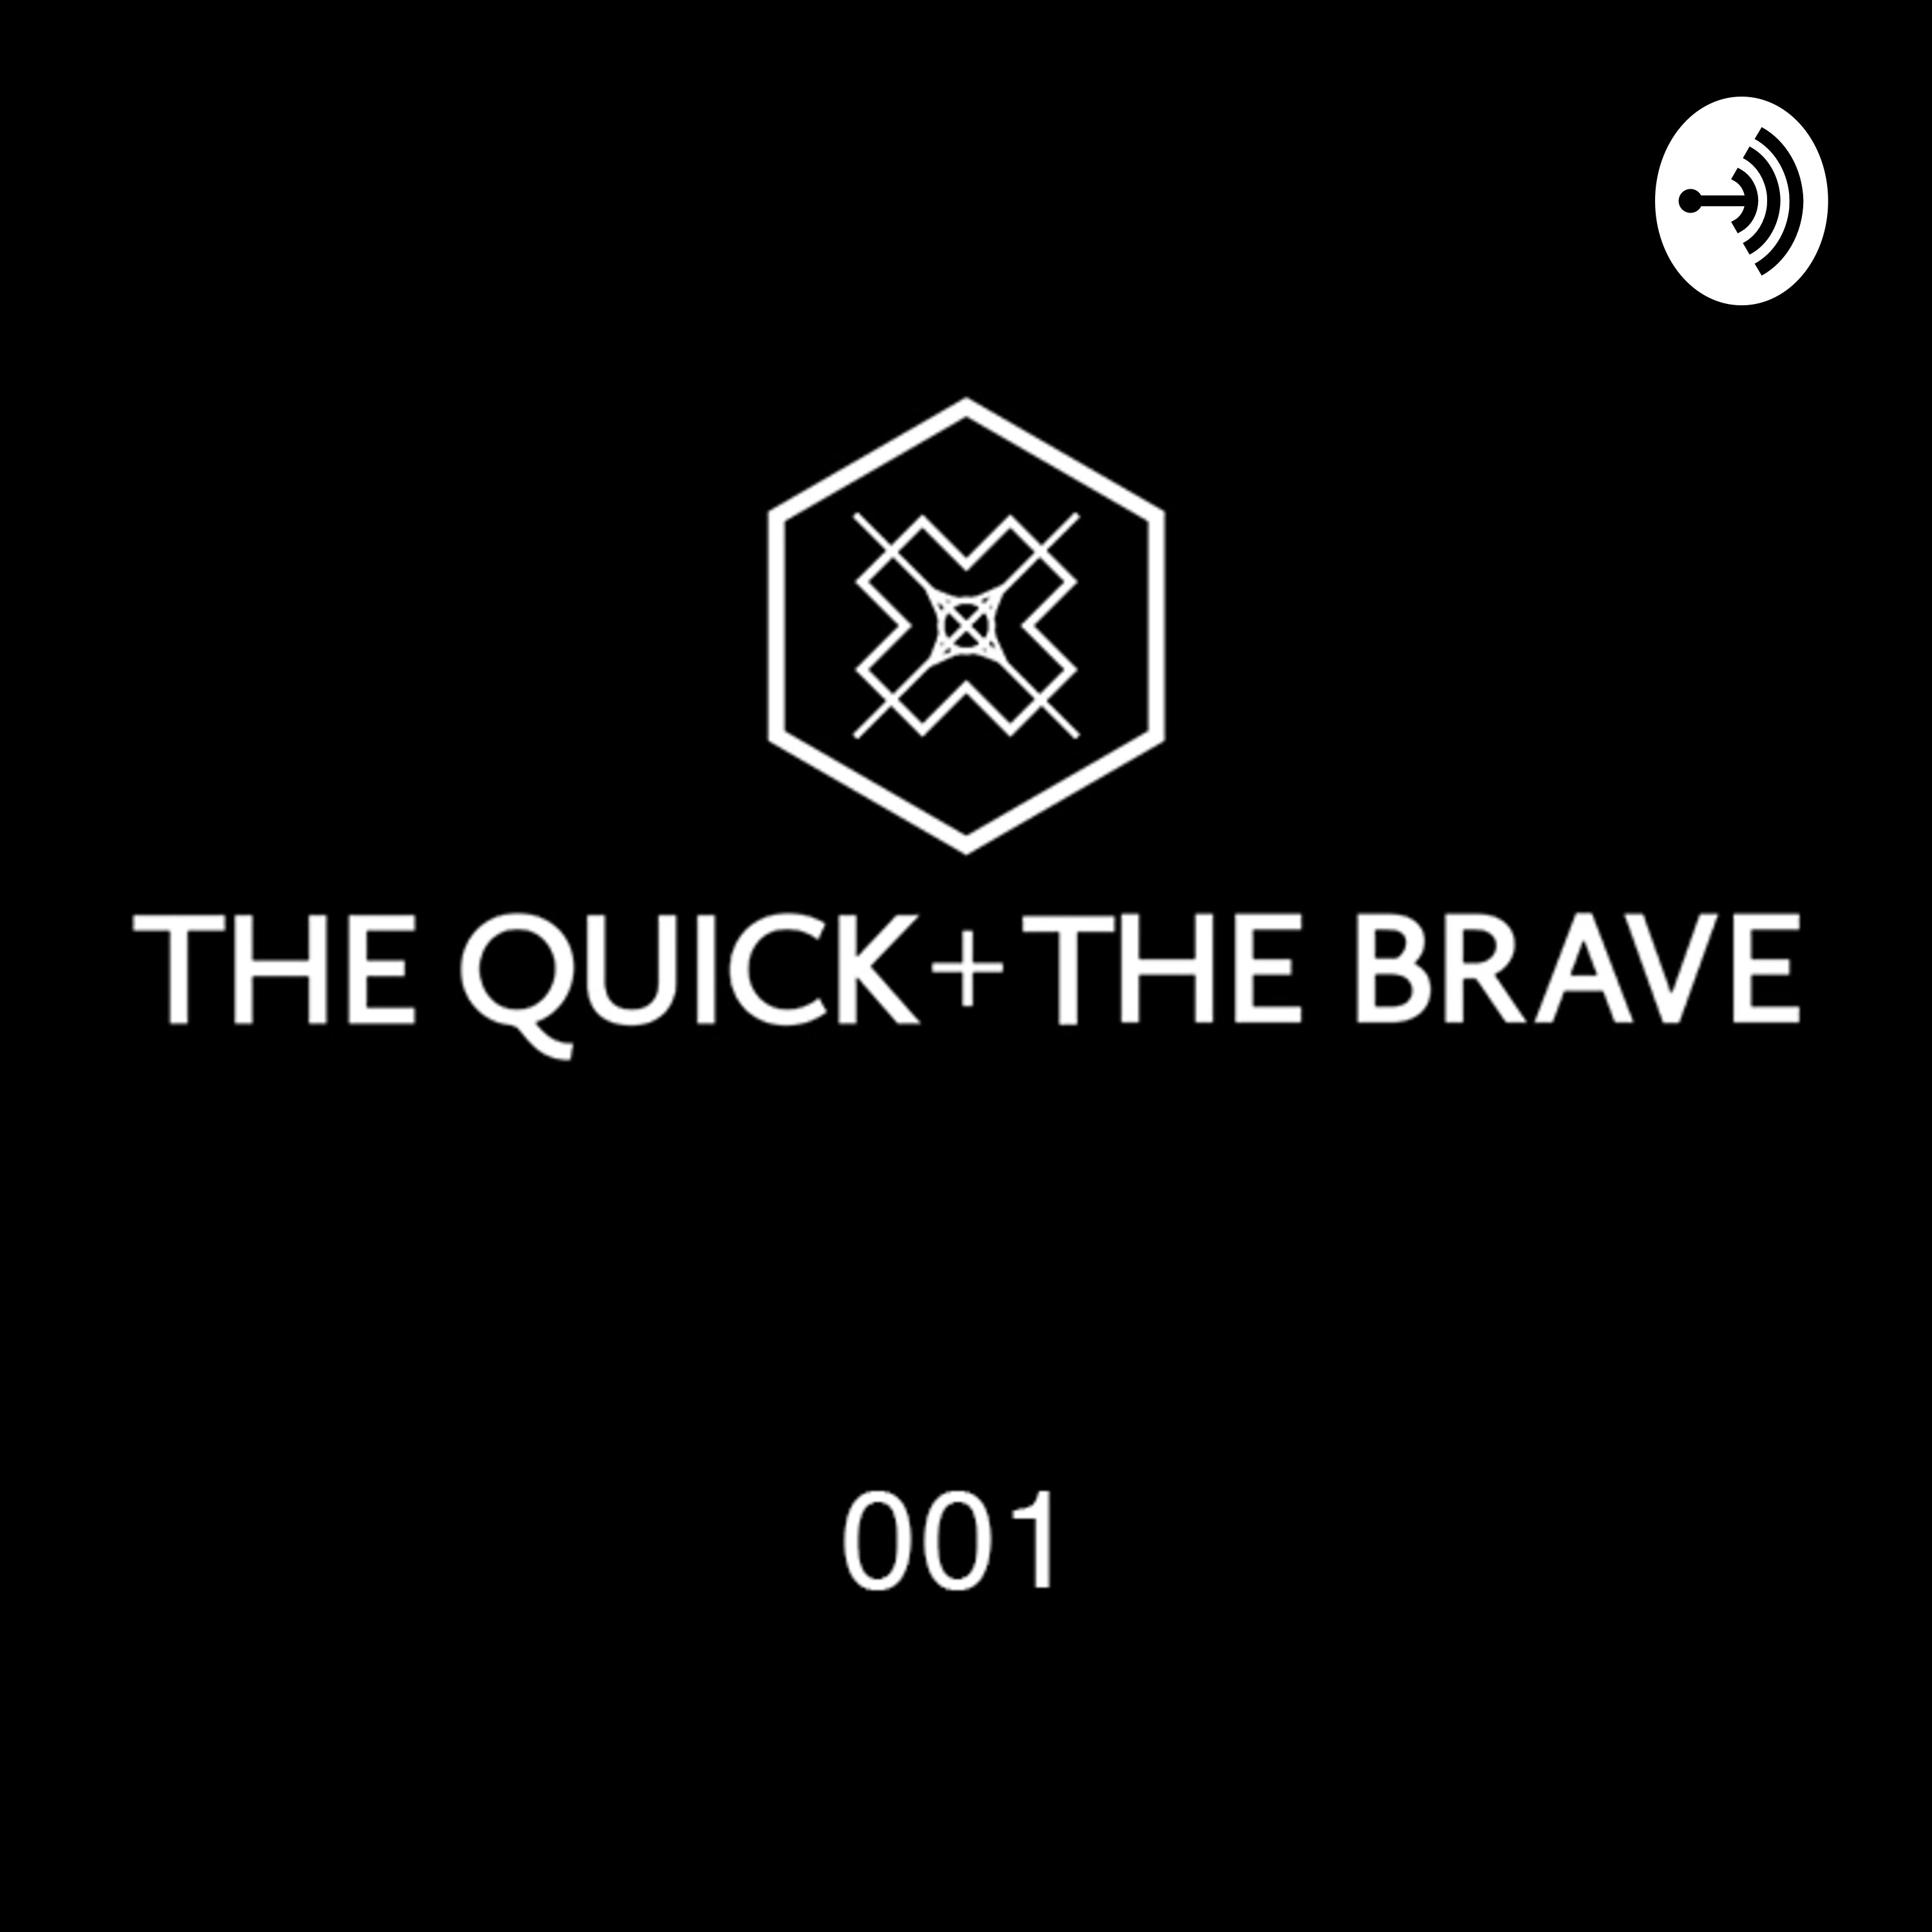 The Quick + The Brave